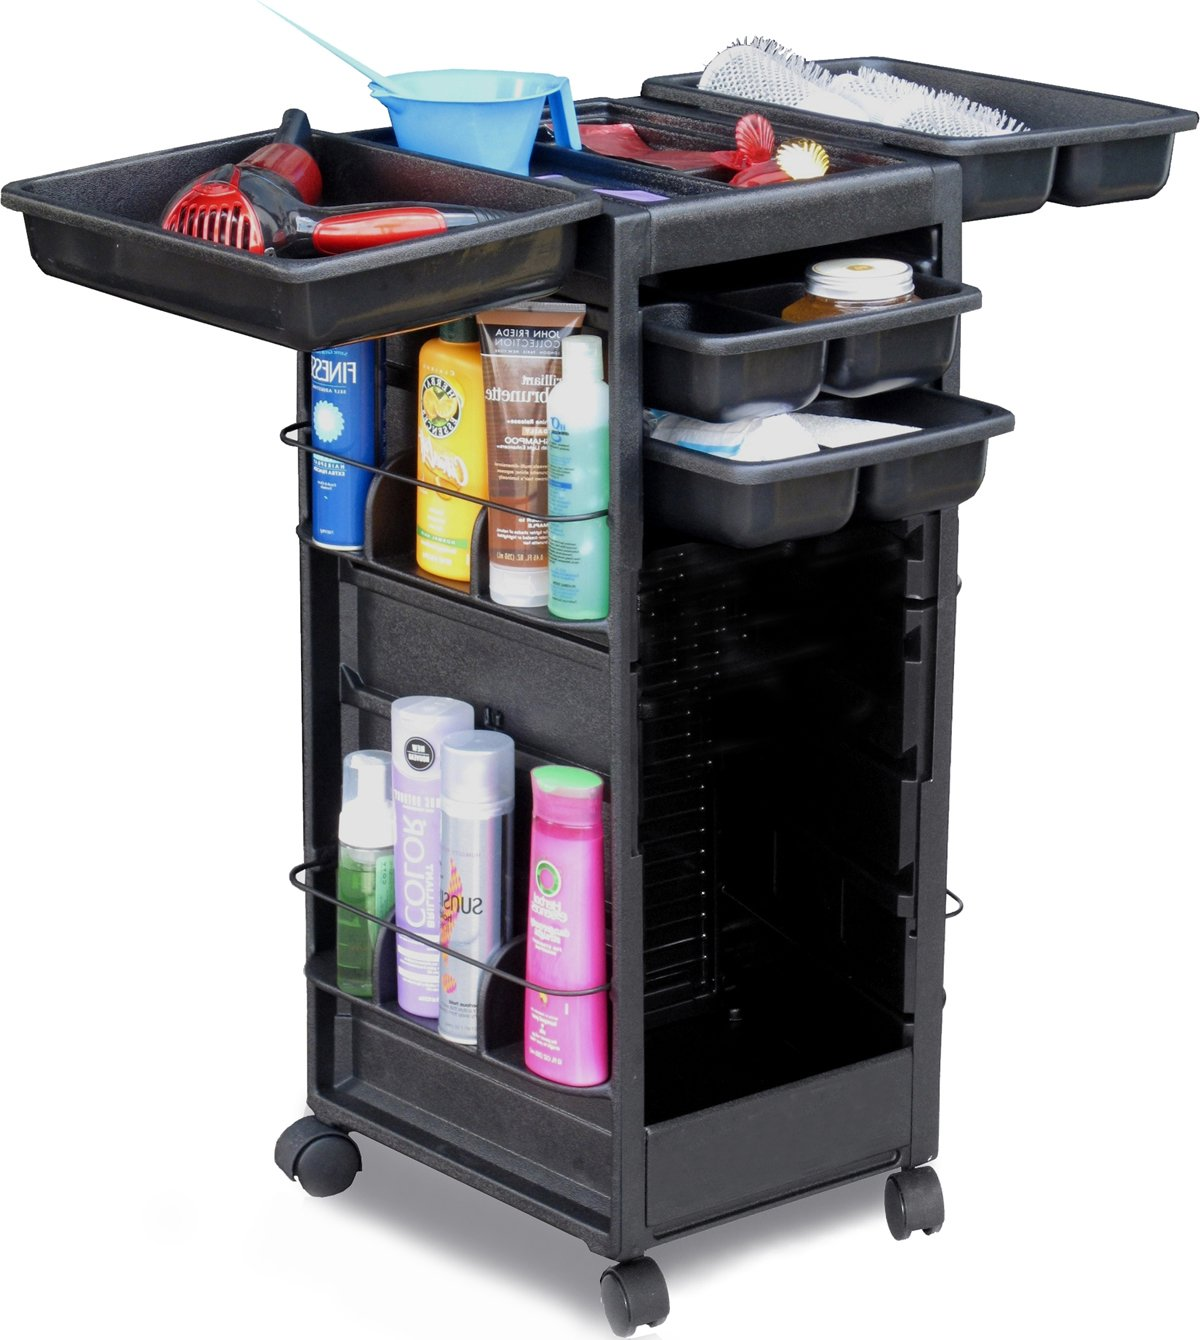 N20-FF Salon Trolley ROLL-About Rolling CART Non Lockable Made in USA by Dina Meri